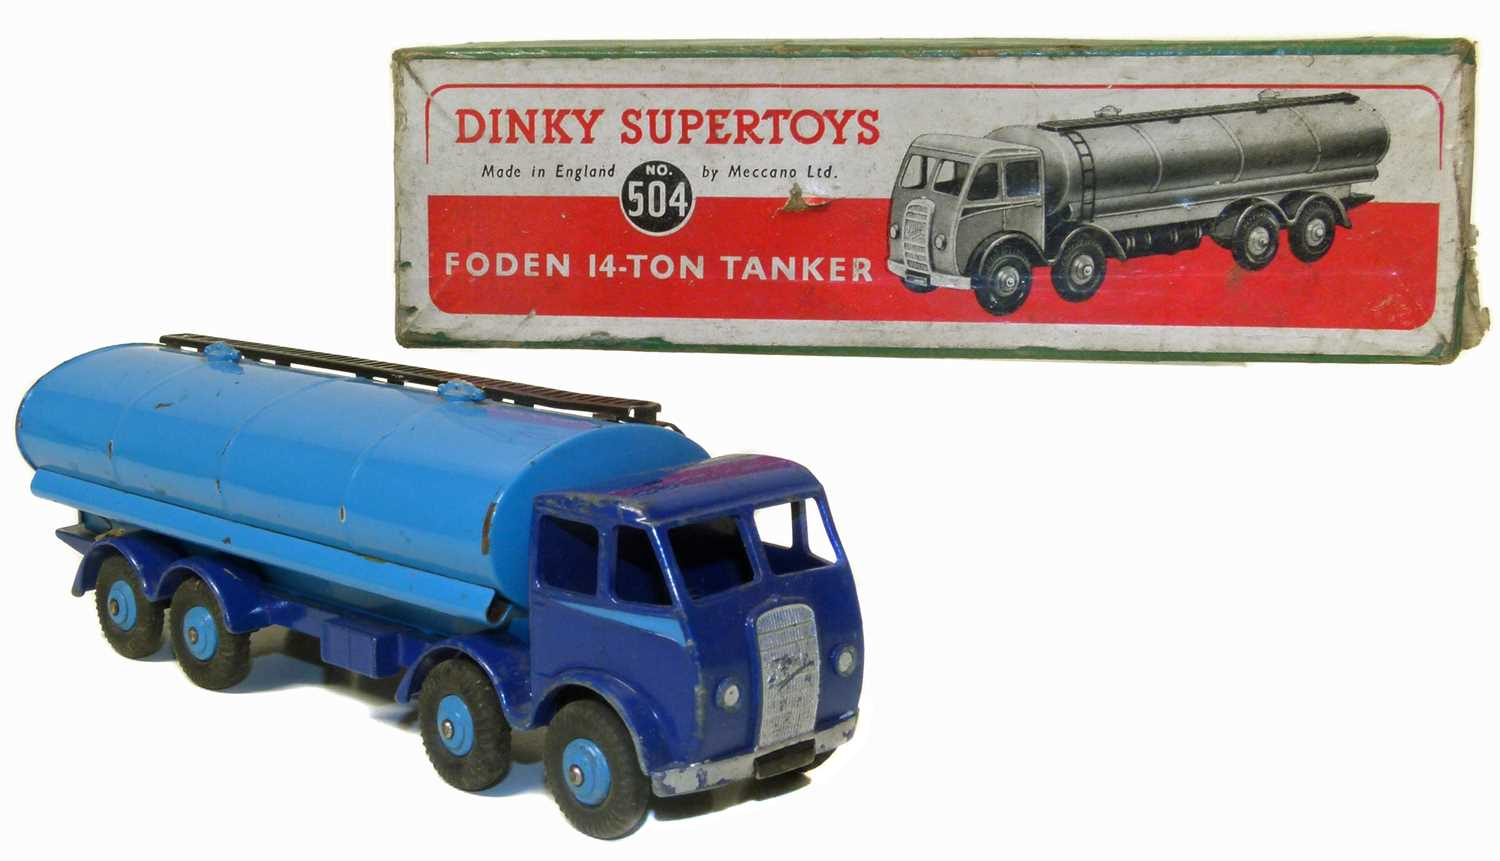 Lot 24-Dinky Supertoys, Foden 14-Ton tanker No. 504 with original box.